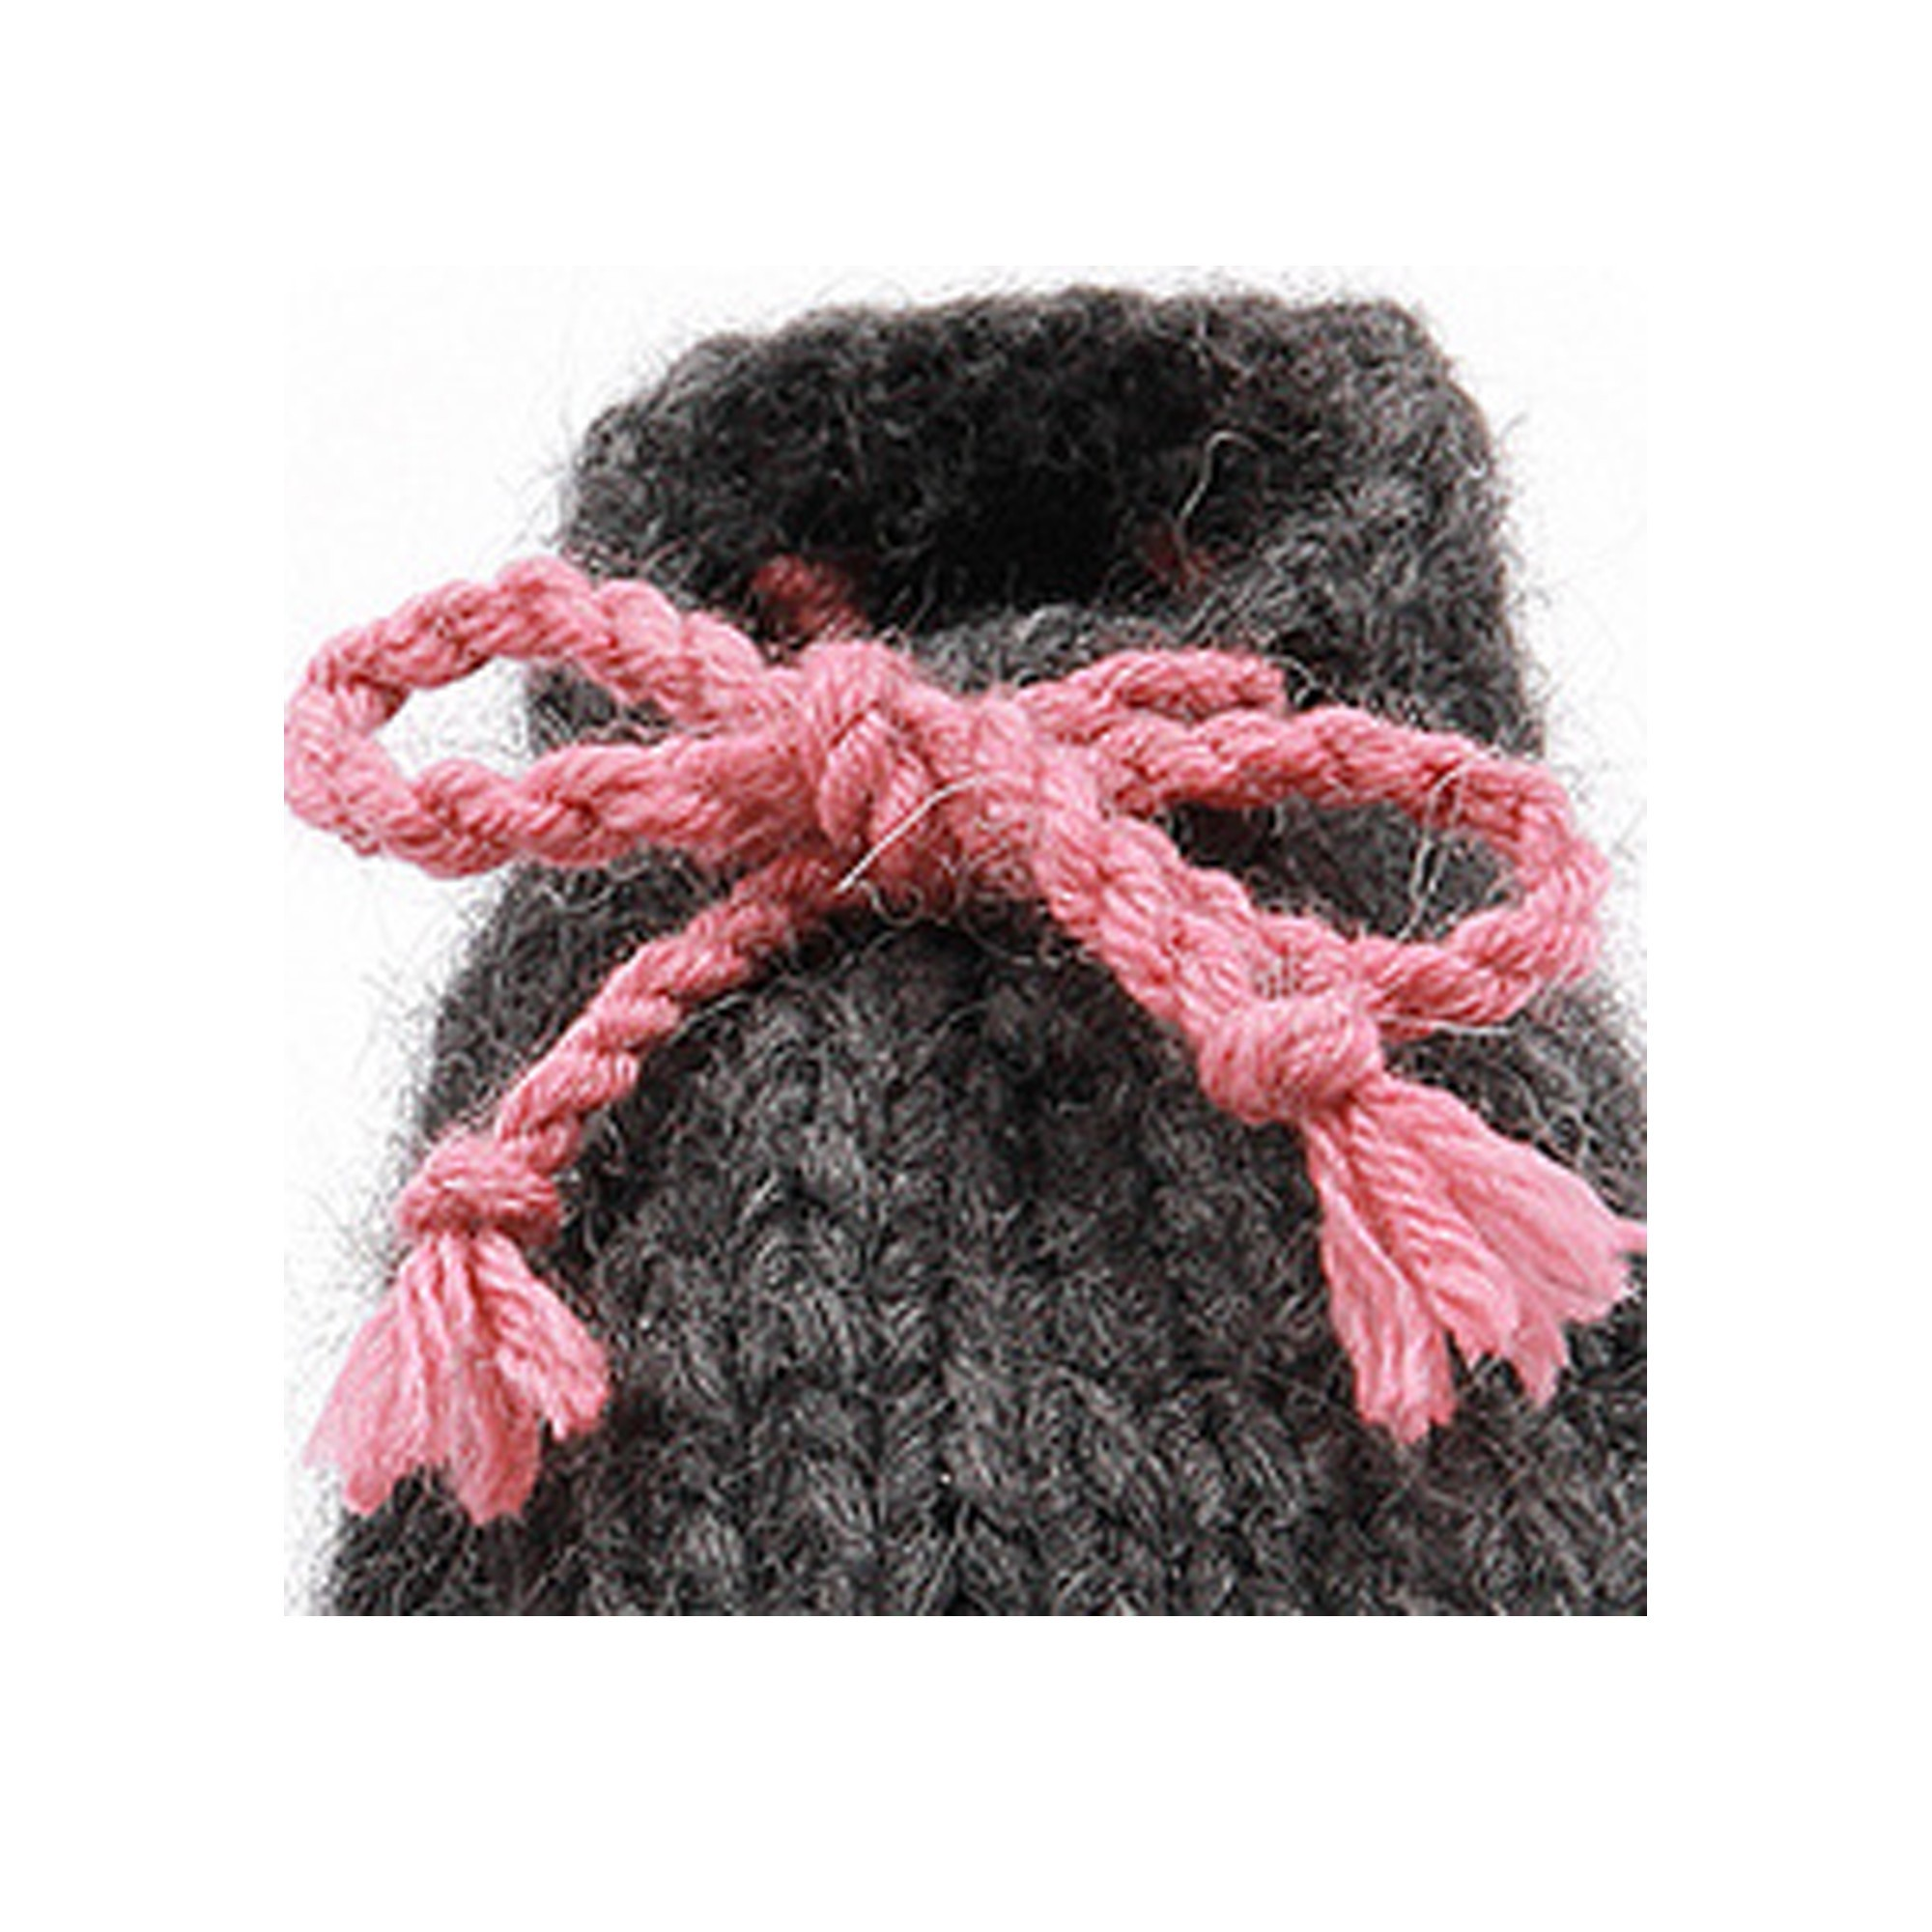 Léon slippers for baby in wool - anthracite and pink color - detail